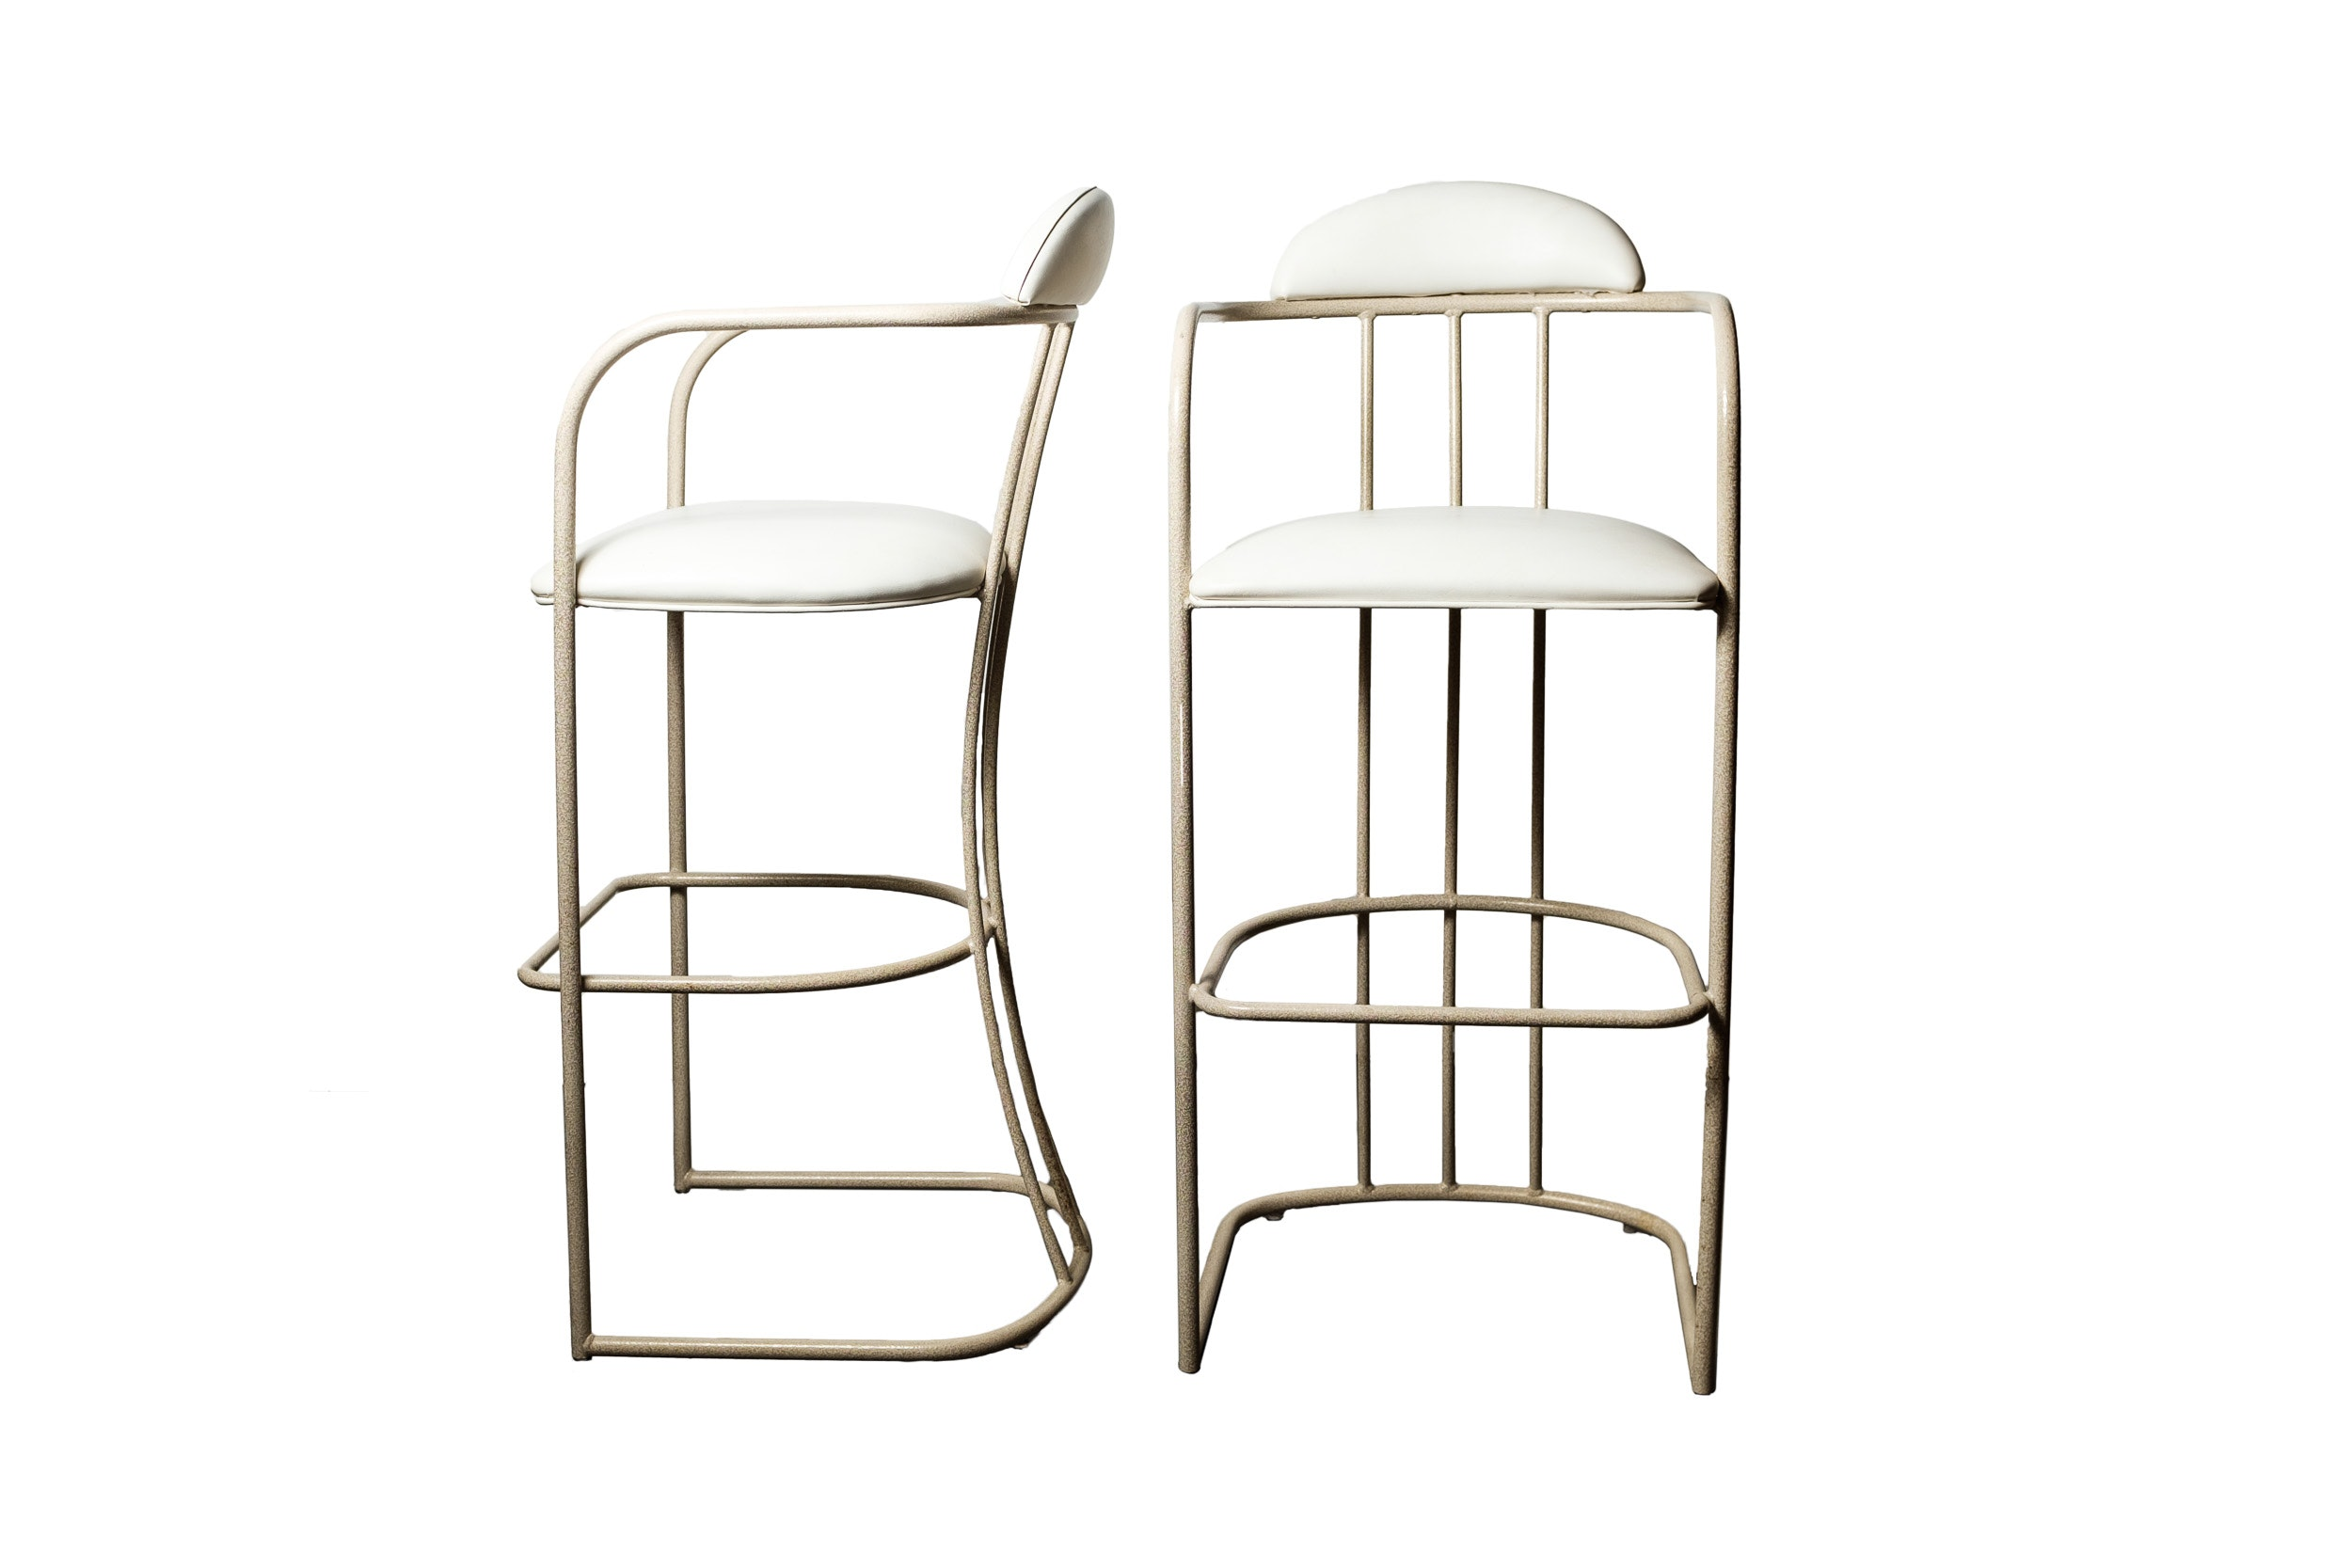 Pair of Modern Counter Stools by U.S. Furniture Industries